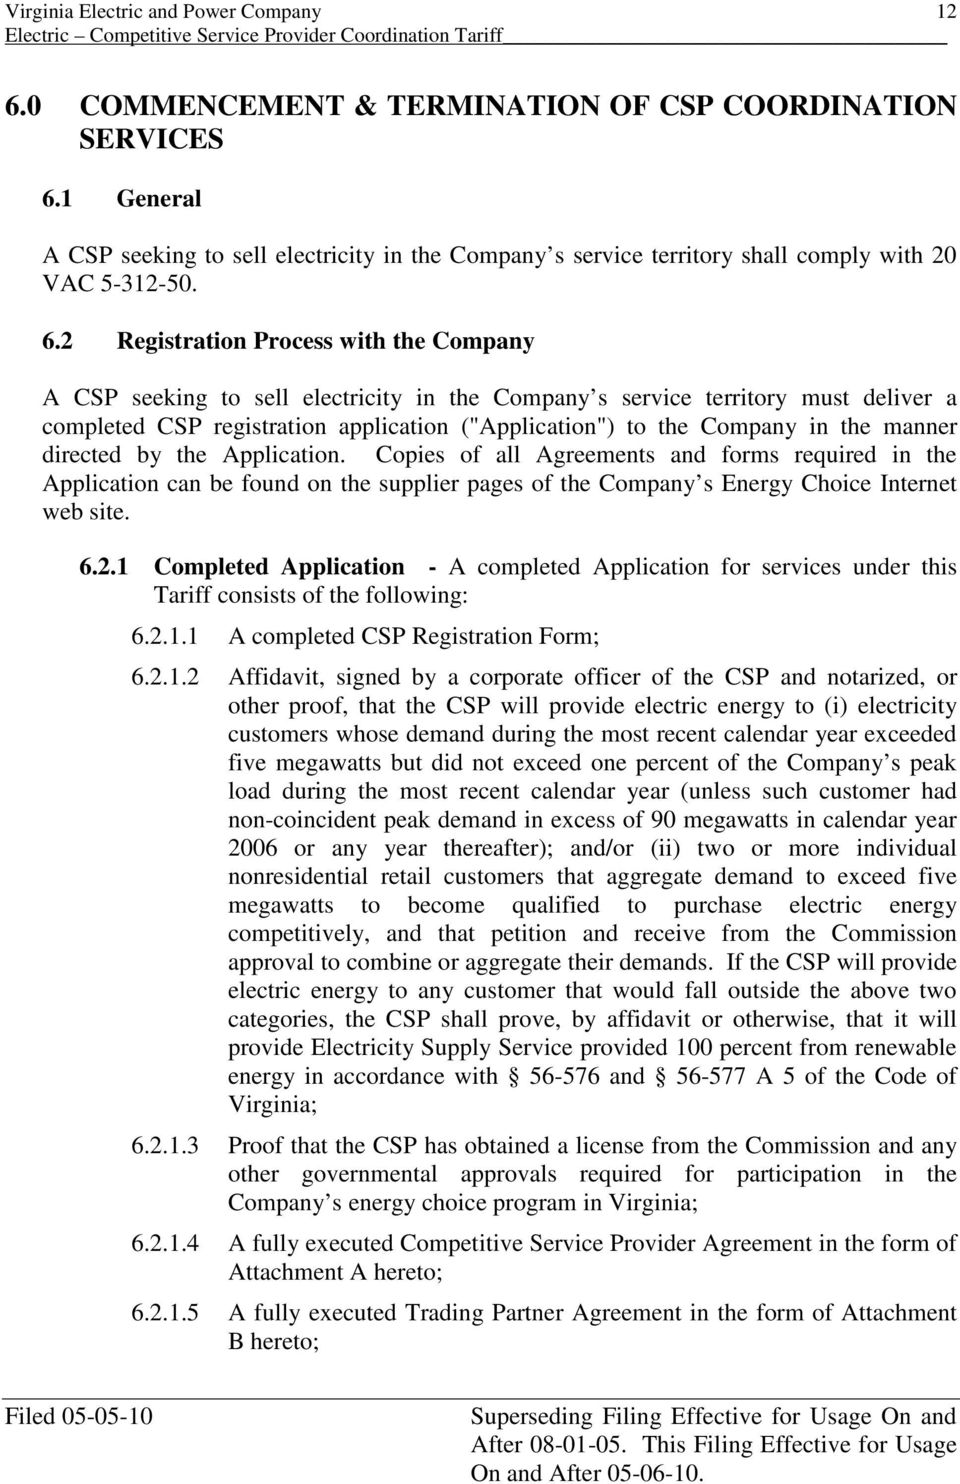 directed by the Application. Copies of all Agreements and forms required in the Application can be found on the supplier pages of the Company s Energy Choice Internet web site. 6.2.